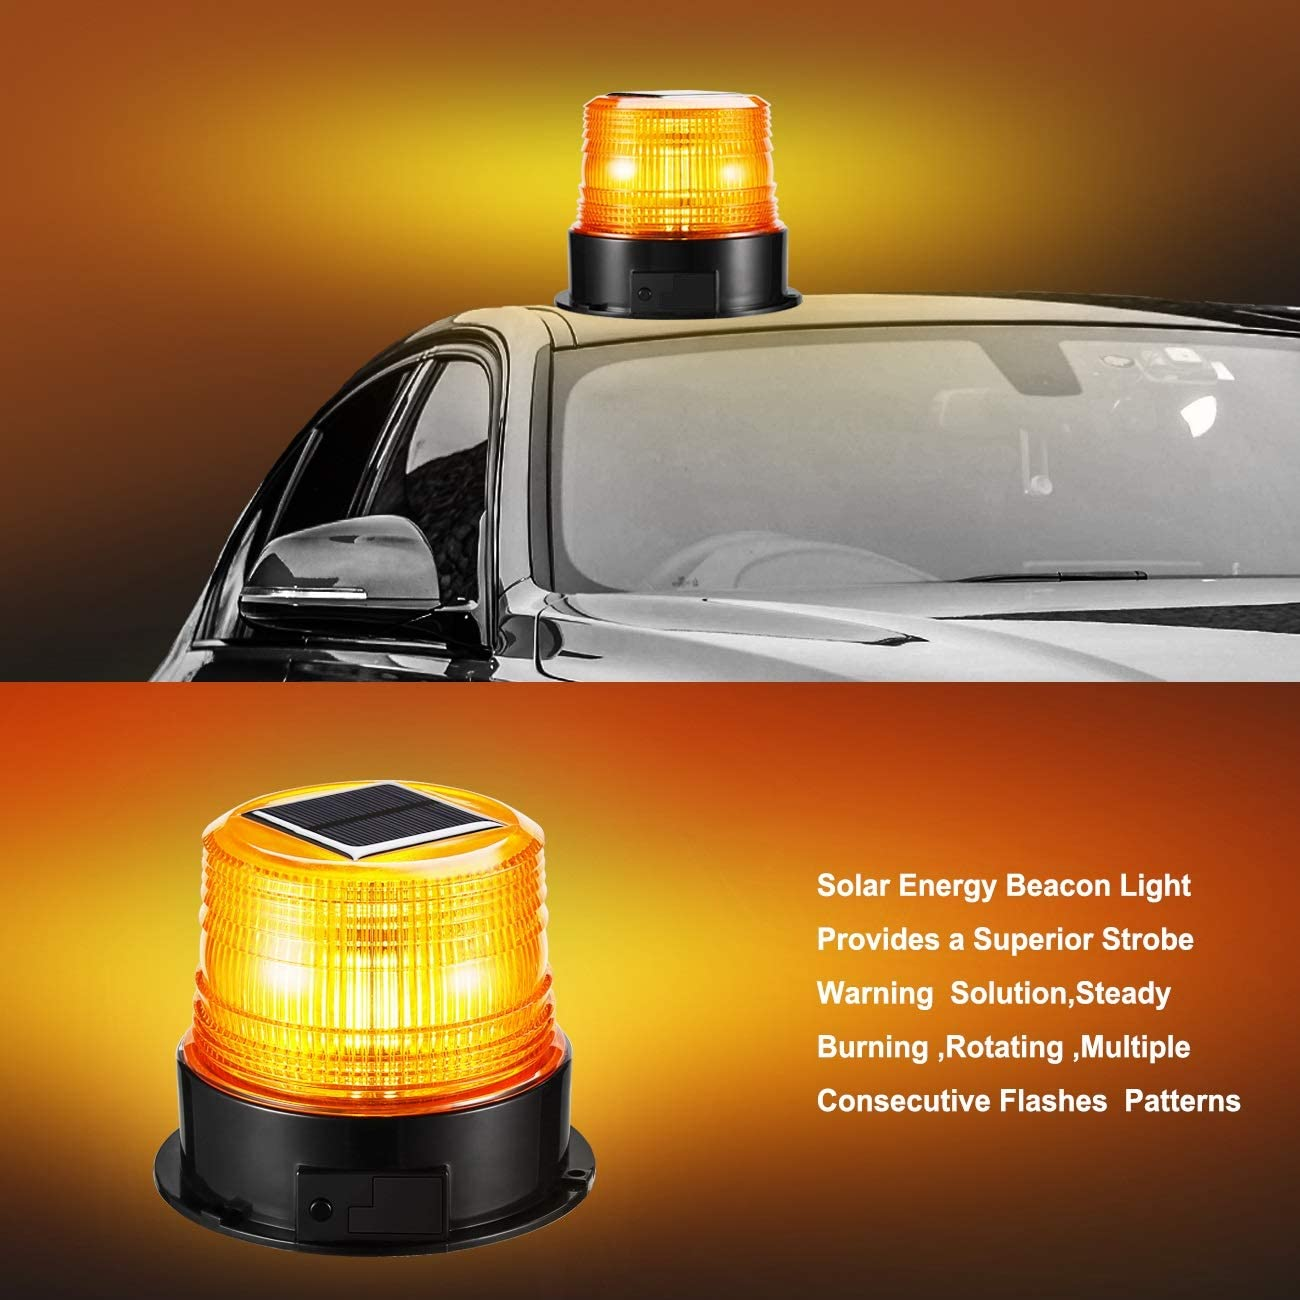 Solar LED Strobe Light Wireless Waterproof Flashing Red Beacon Lights with Magnet Portable,Rotating Warning Lights for Vehicles Tow Trucks School Bus